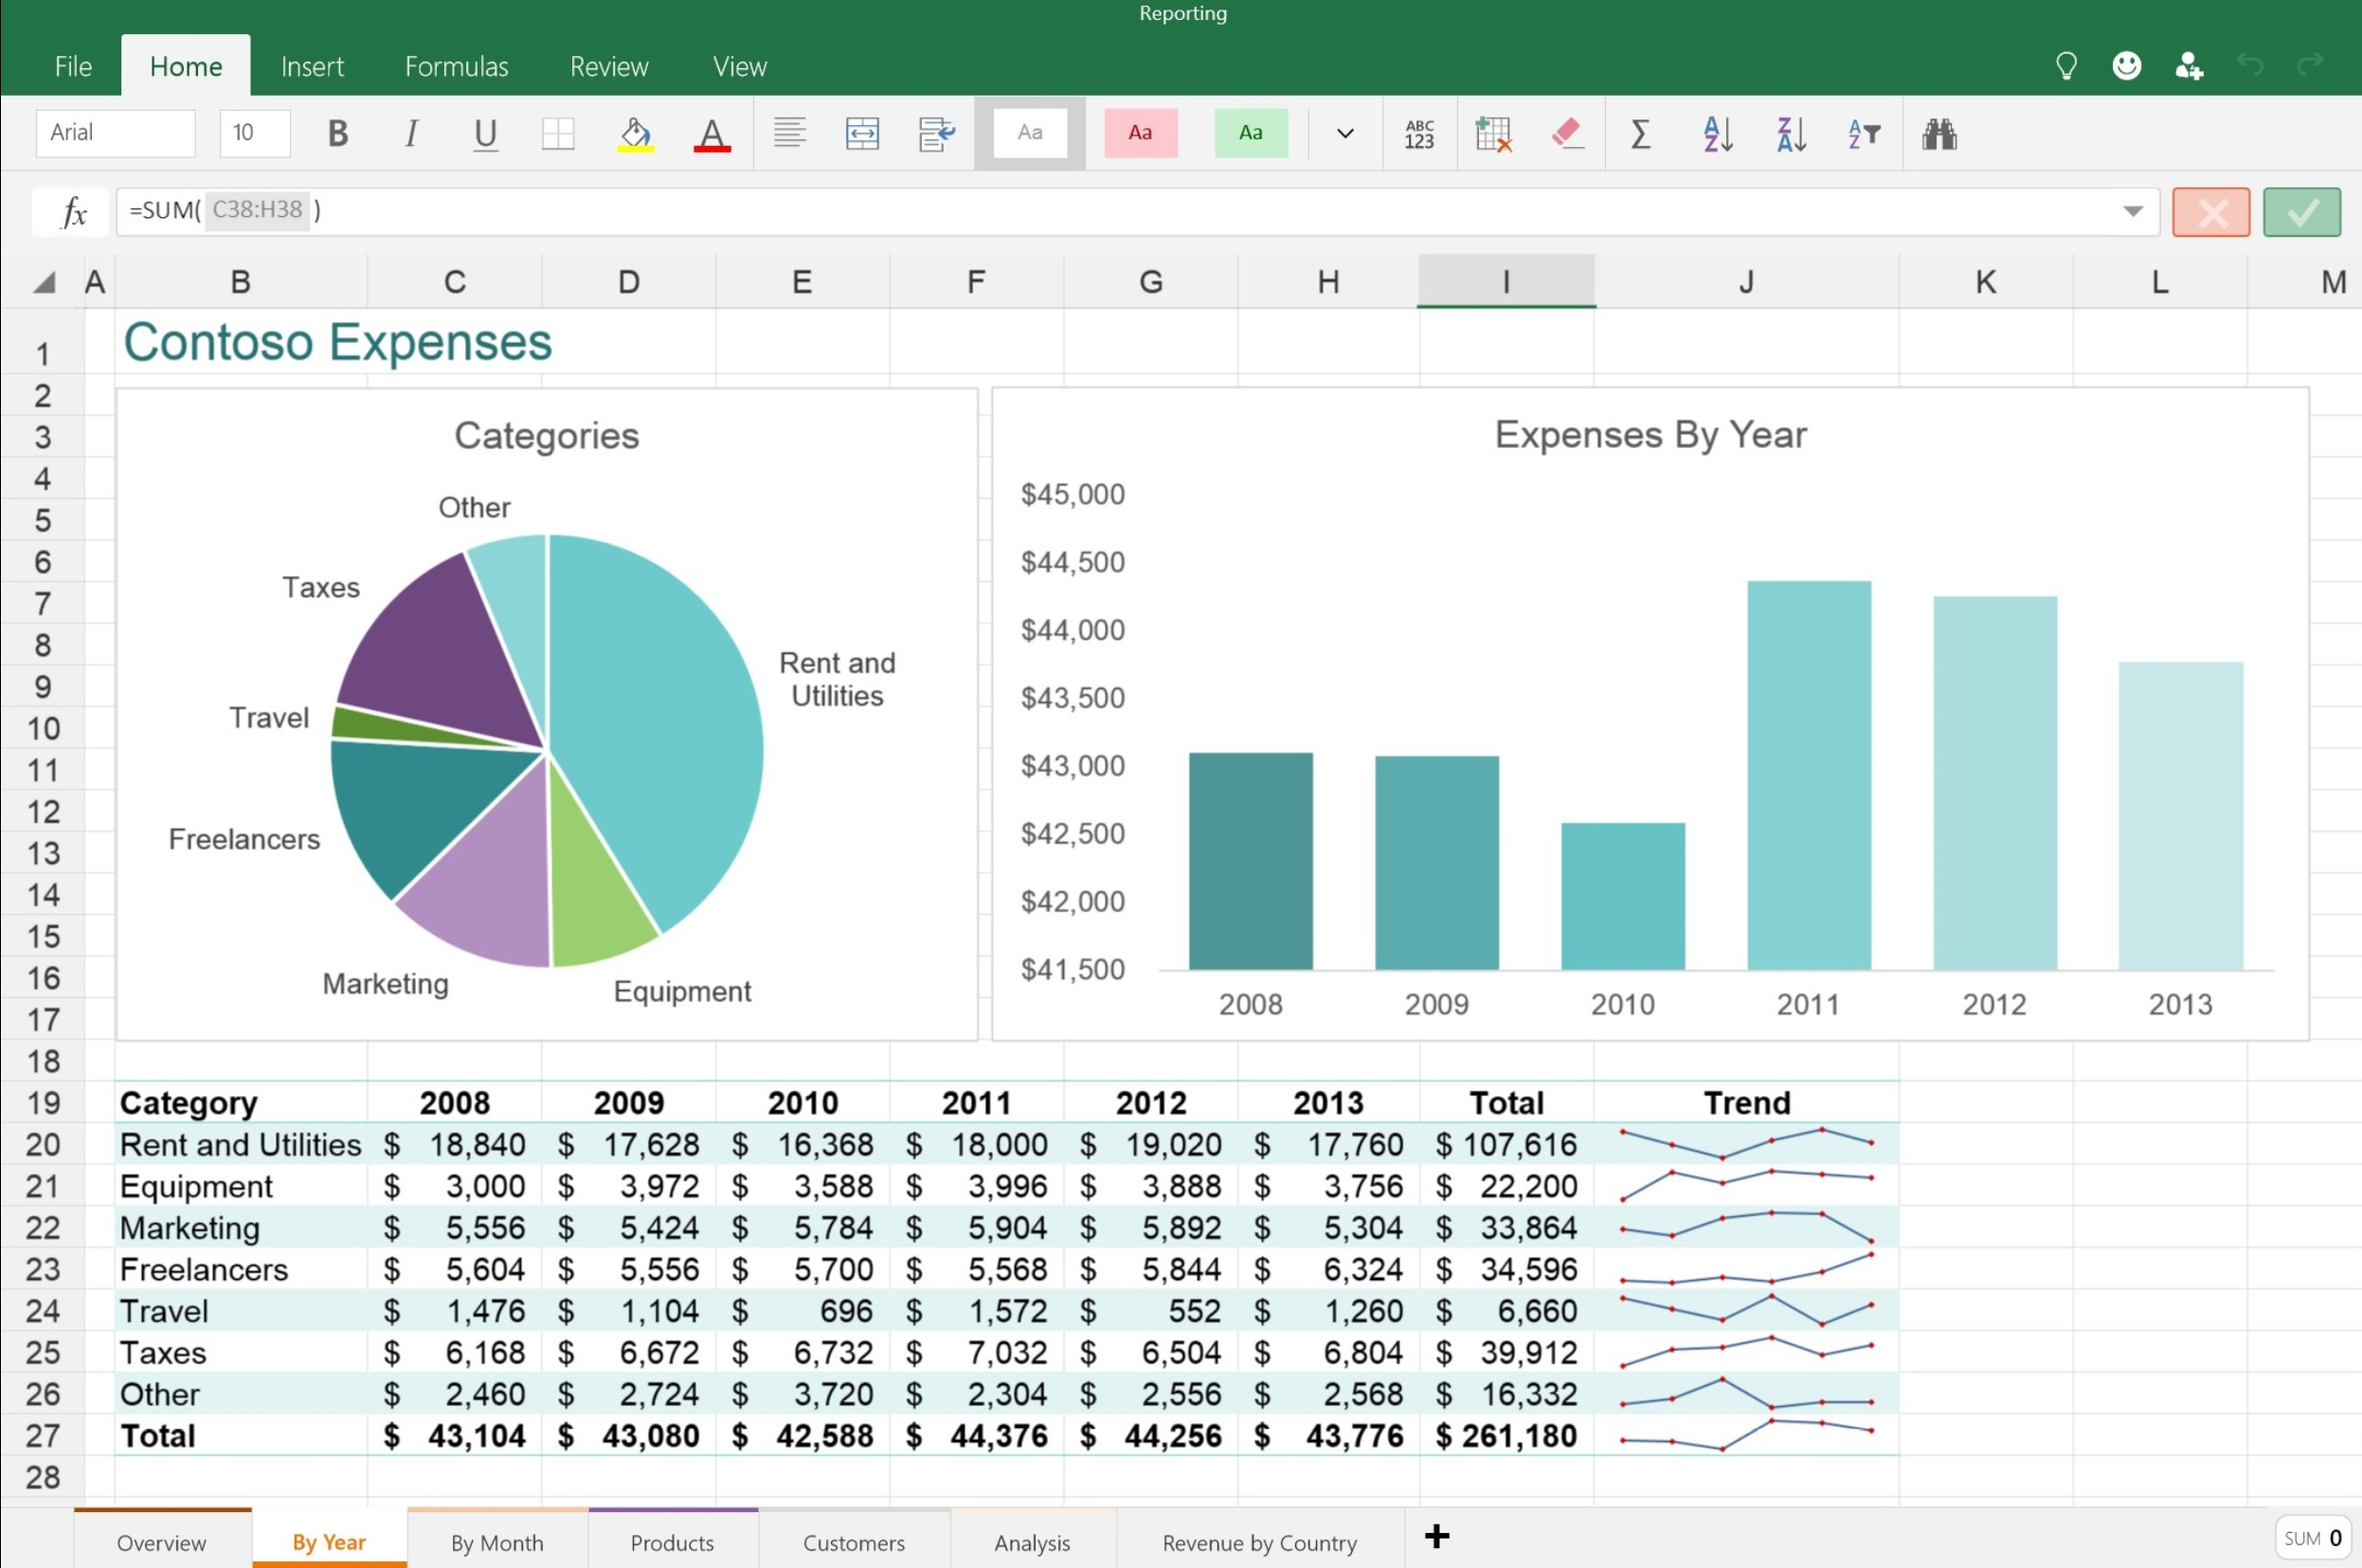 Ediblewildsus  Surprising Features Available In The New Word Excel And Powerpoint Apps For  With Fetching Excel Touch App  With Beauteous Chart Data Range Excel Also Excel Vba Rowscount In Addition Duration In Excel And Excel Forumlas As Well As Make Mailing Labels From Excel Additionally Excel How To Freeze Panes From Mspowerusercom With Ediblewildsus  Fetching Features Available In The New Word Excel And Powerpoint Apps For  With Beauteous Excel Touch App  And Surprising Chart Data Range Excel Also Excel Vba Rowscount In Addition Duration In Excel From Mspowerusercom